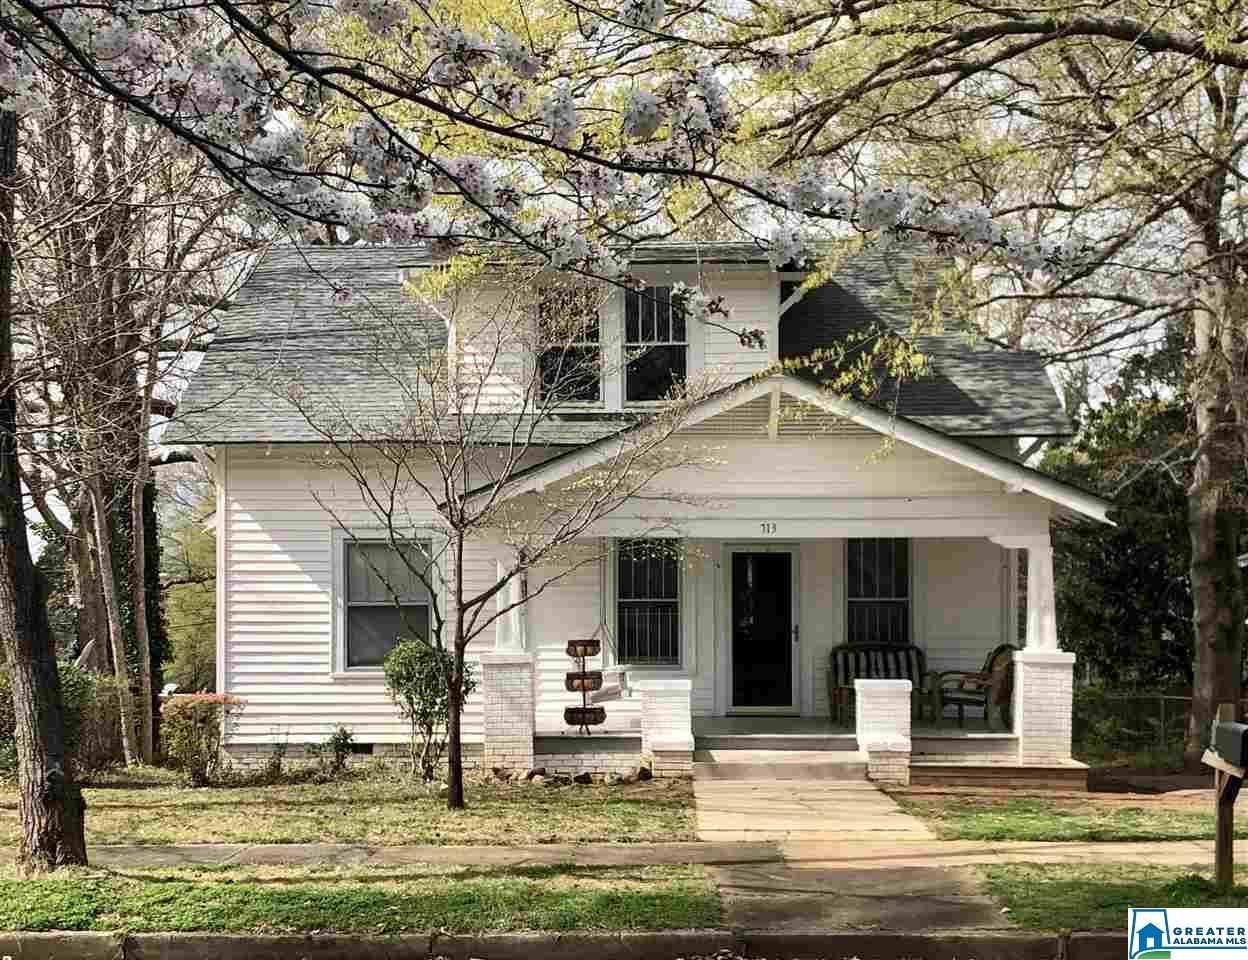 713 OAK ST, Anniston, AL 36207 - MLS#: 878364